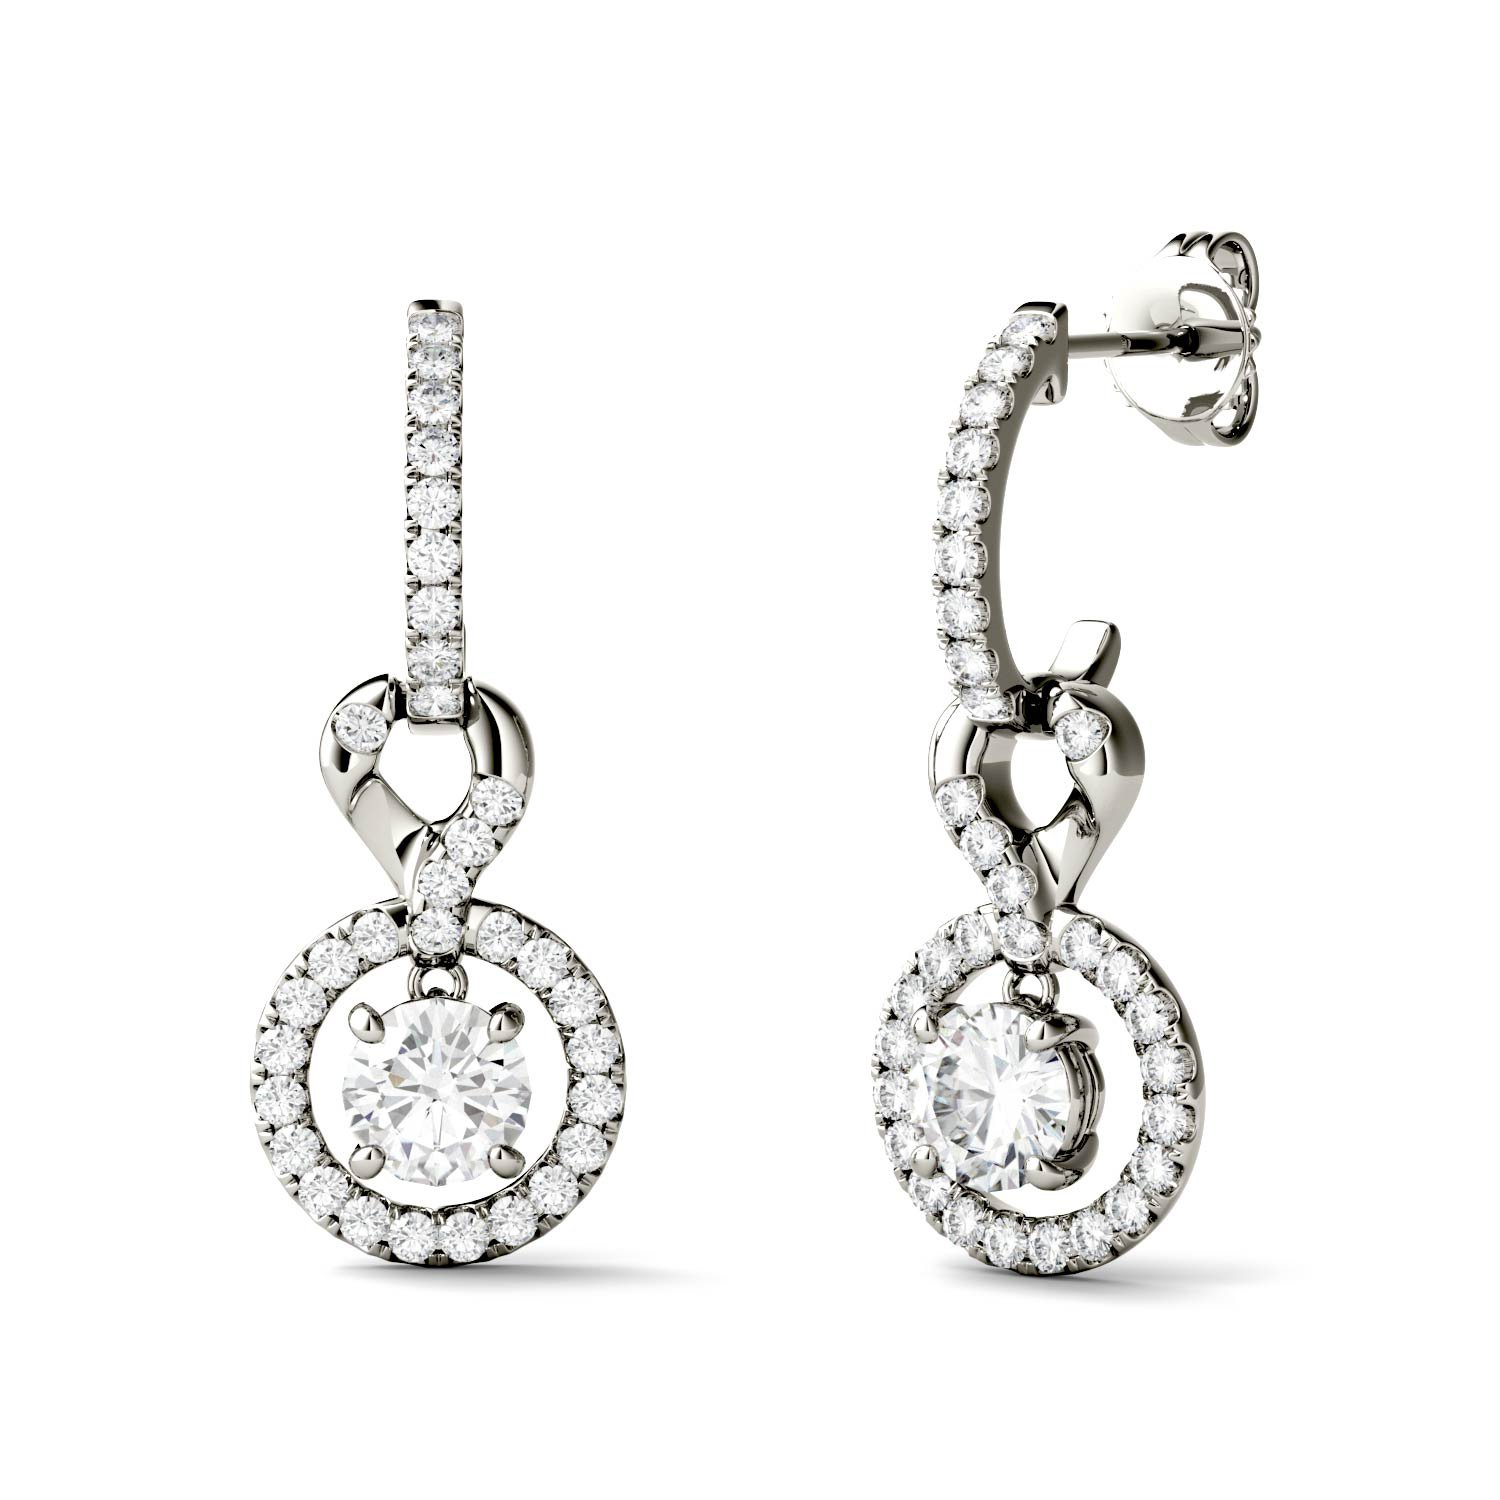 Forever Brilliant 5.0mm Round Moissanite Halo Drop Earrings, 1.64cttw DEW By Charles & Colvard